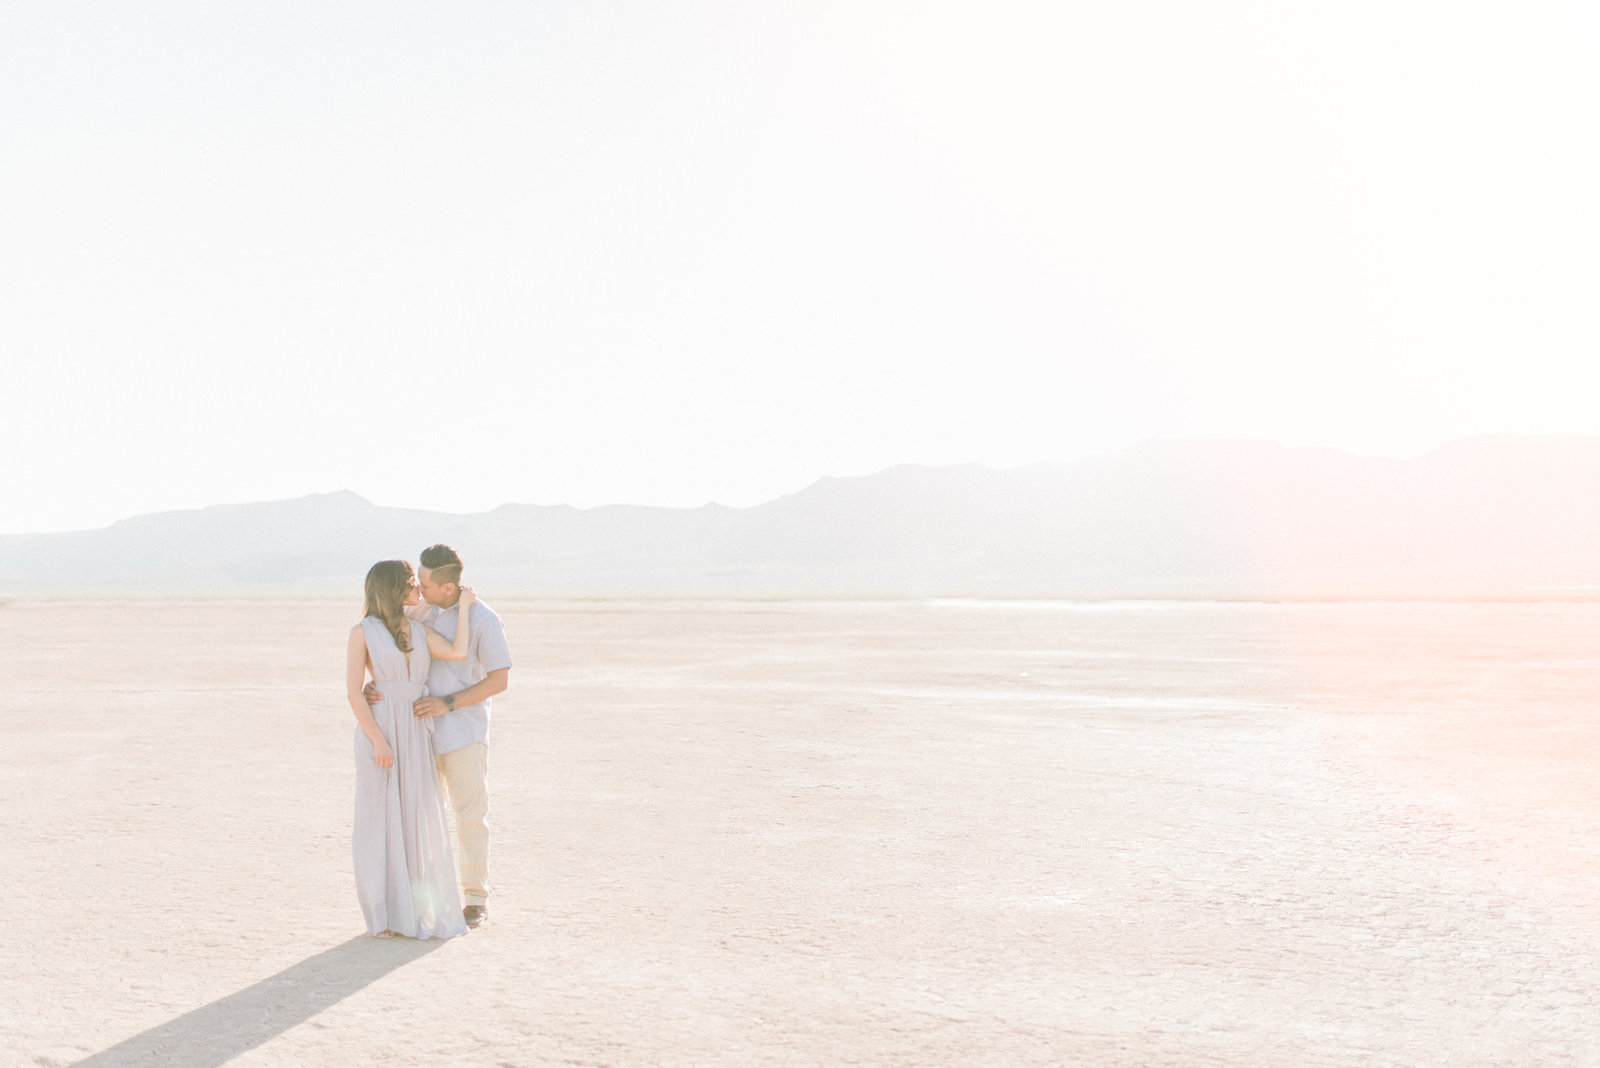 las-vegas-engagement-photographer-desert-6